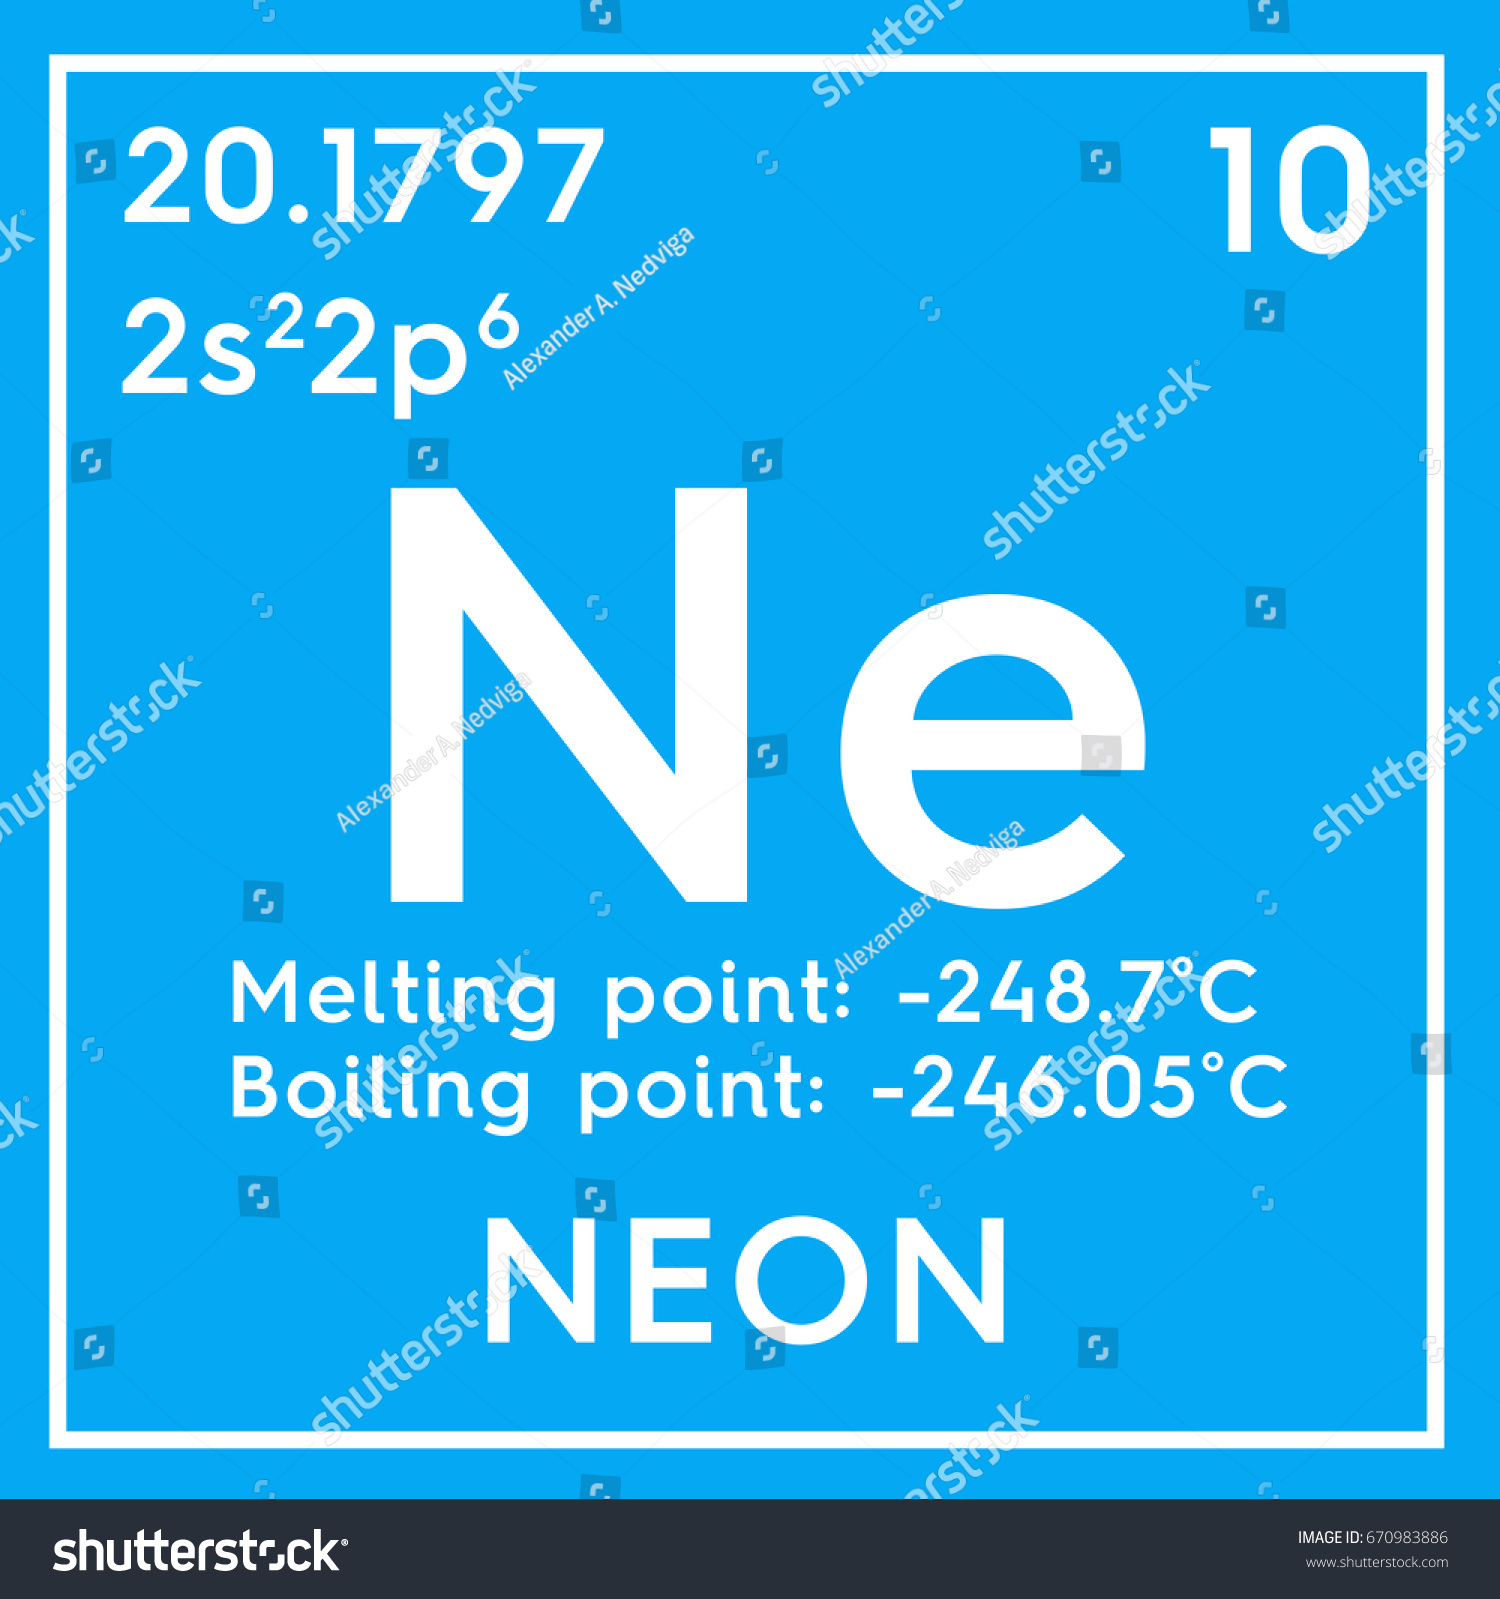 Neon noble gases chemical element mendeleevs stock illustration neon noble gases chemical element of mendeleevs periodic table neon in square cube gamestrikefo Images